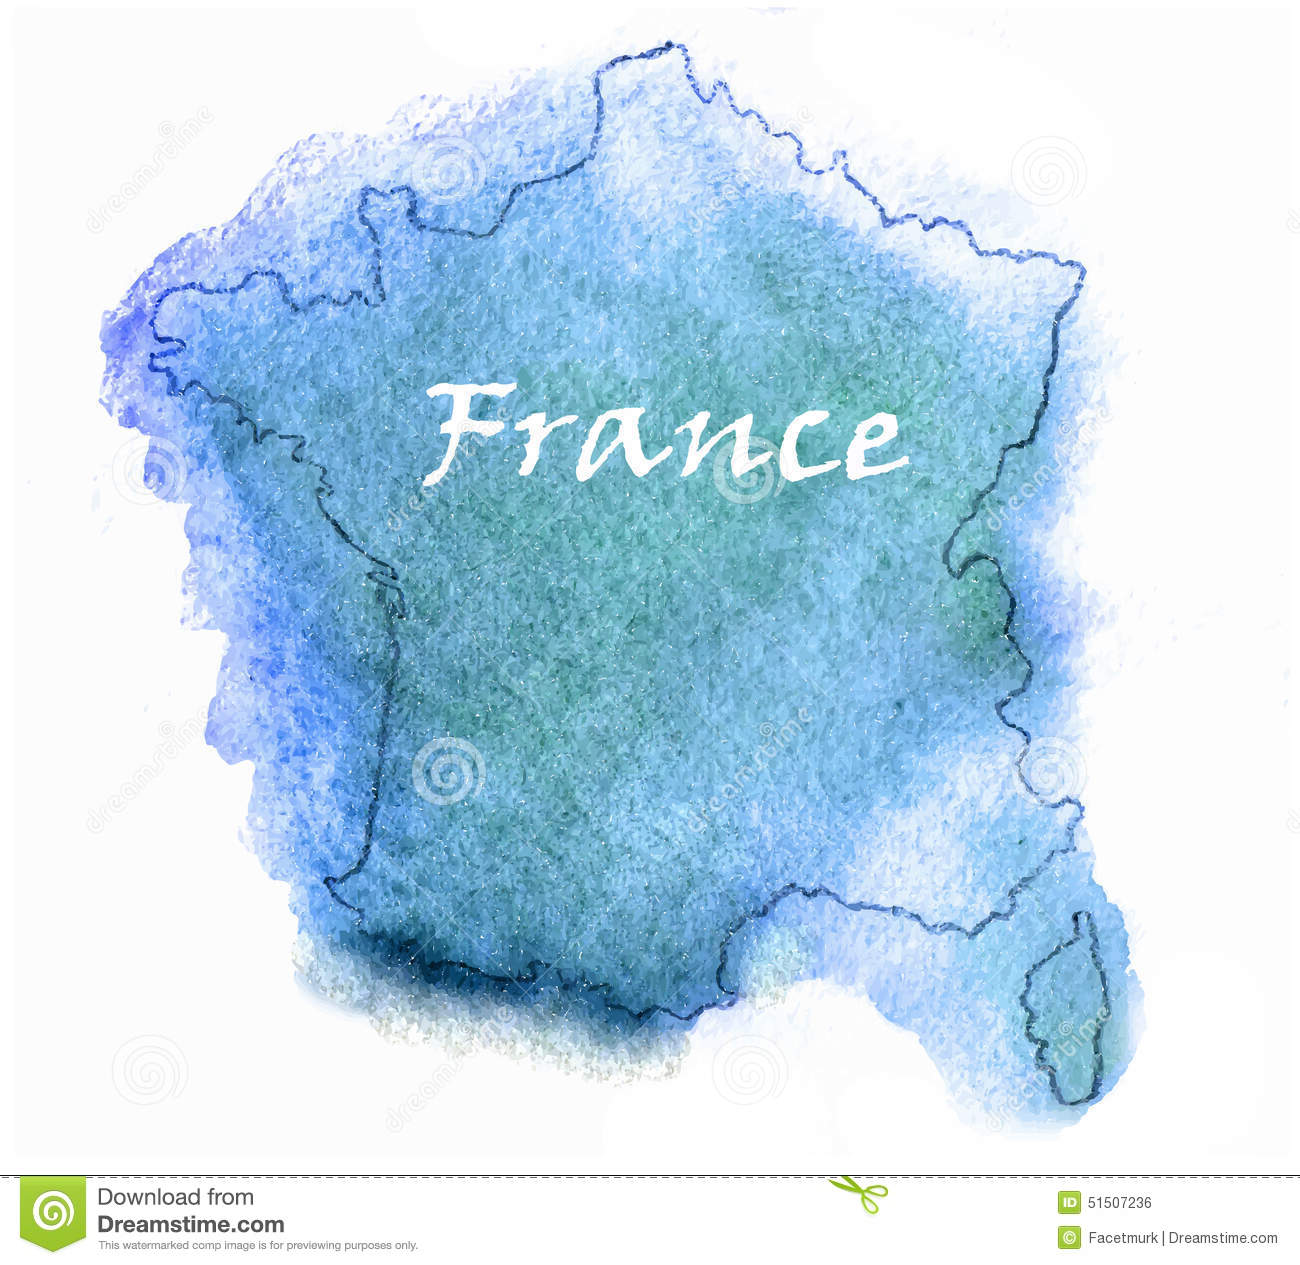 Custom Card Template french id card template : France Vector Watercolor Map Stock Vector - Image: 51507236